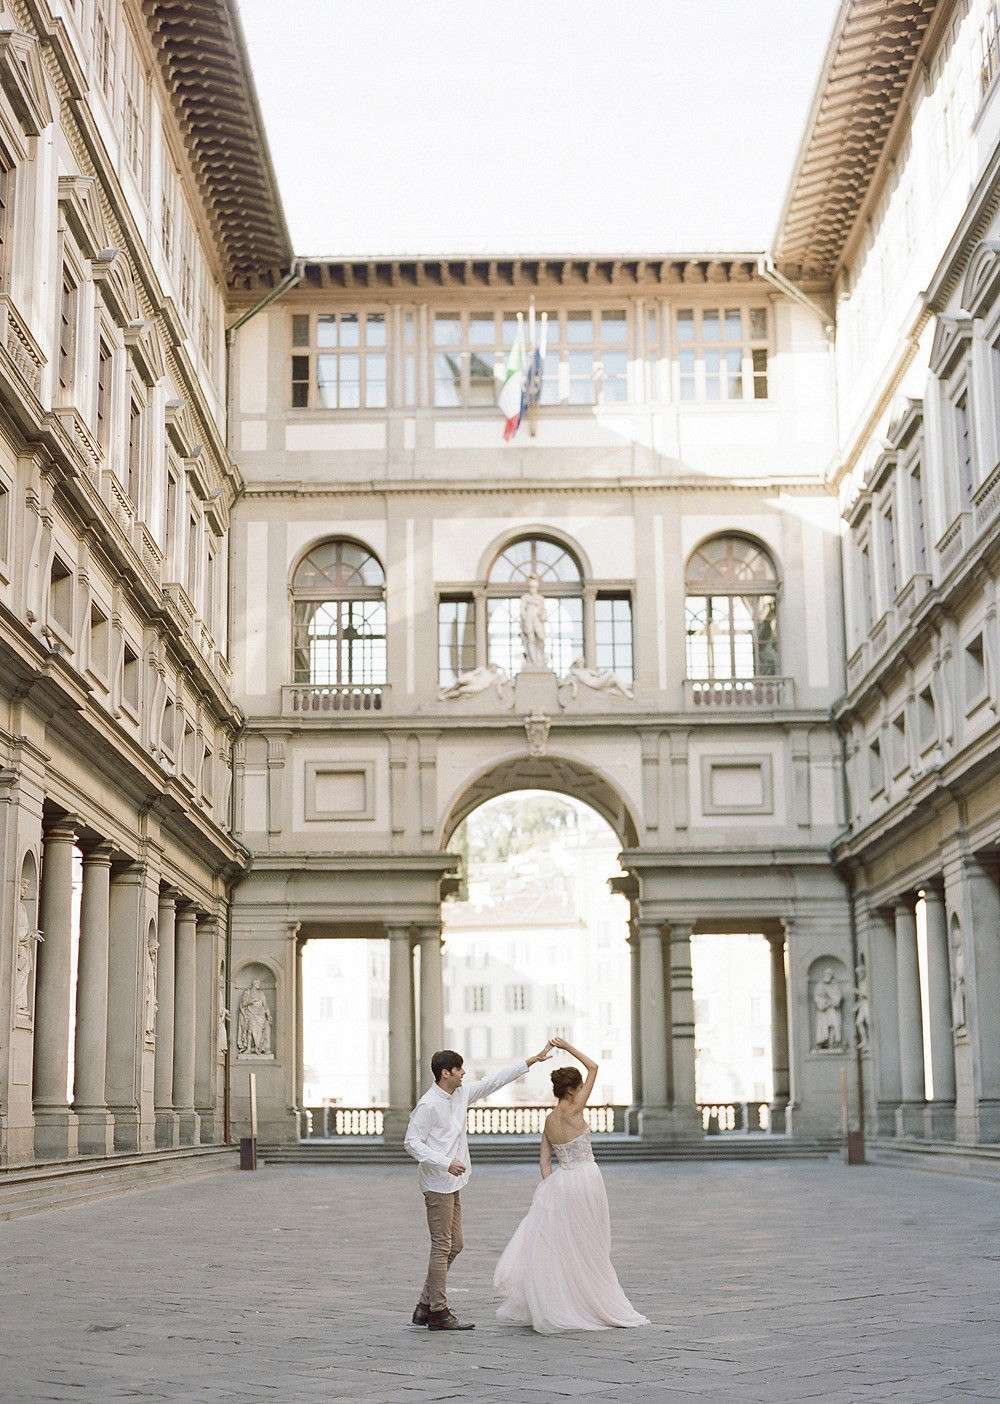 Dreamy Wedding Inspiration with Epic Views of Florence's Duomo